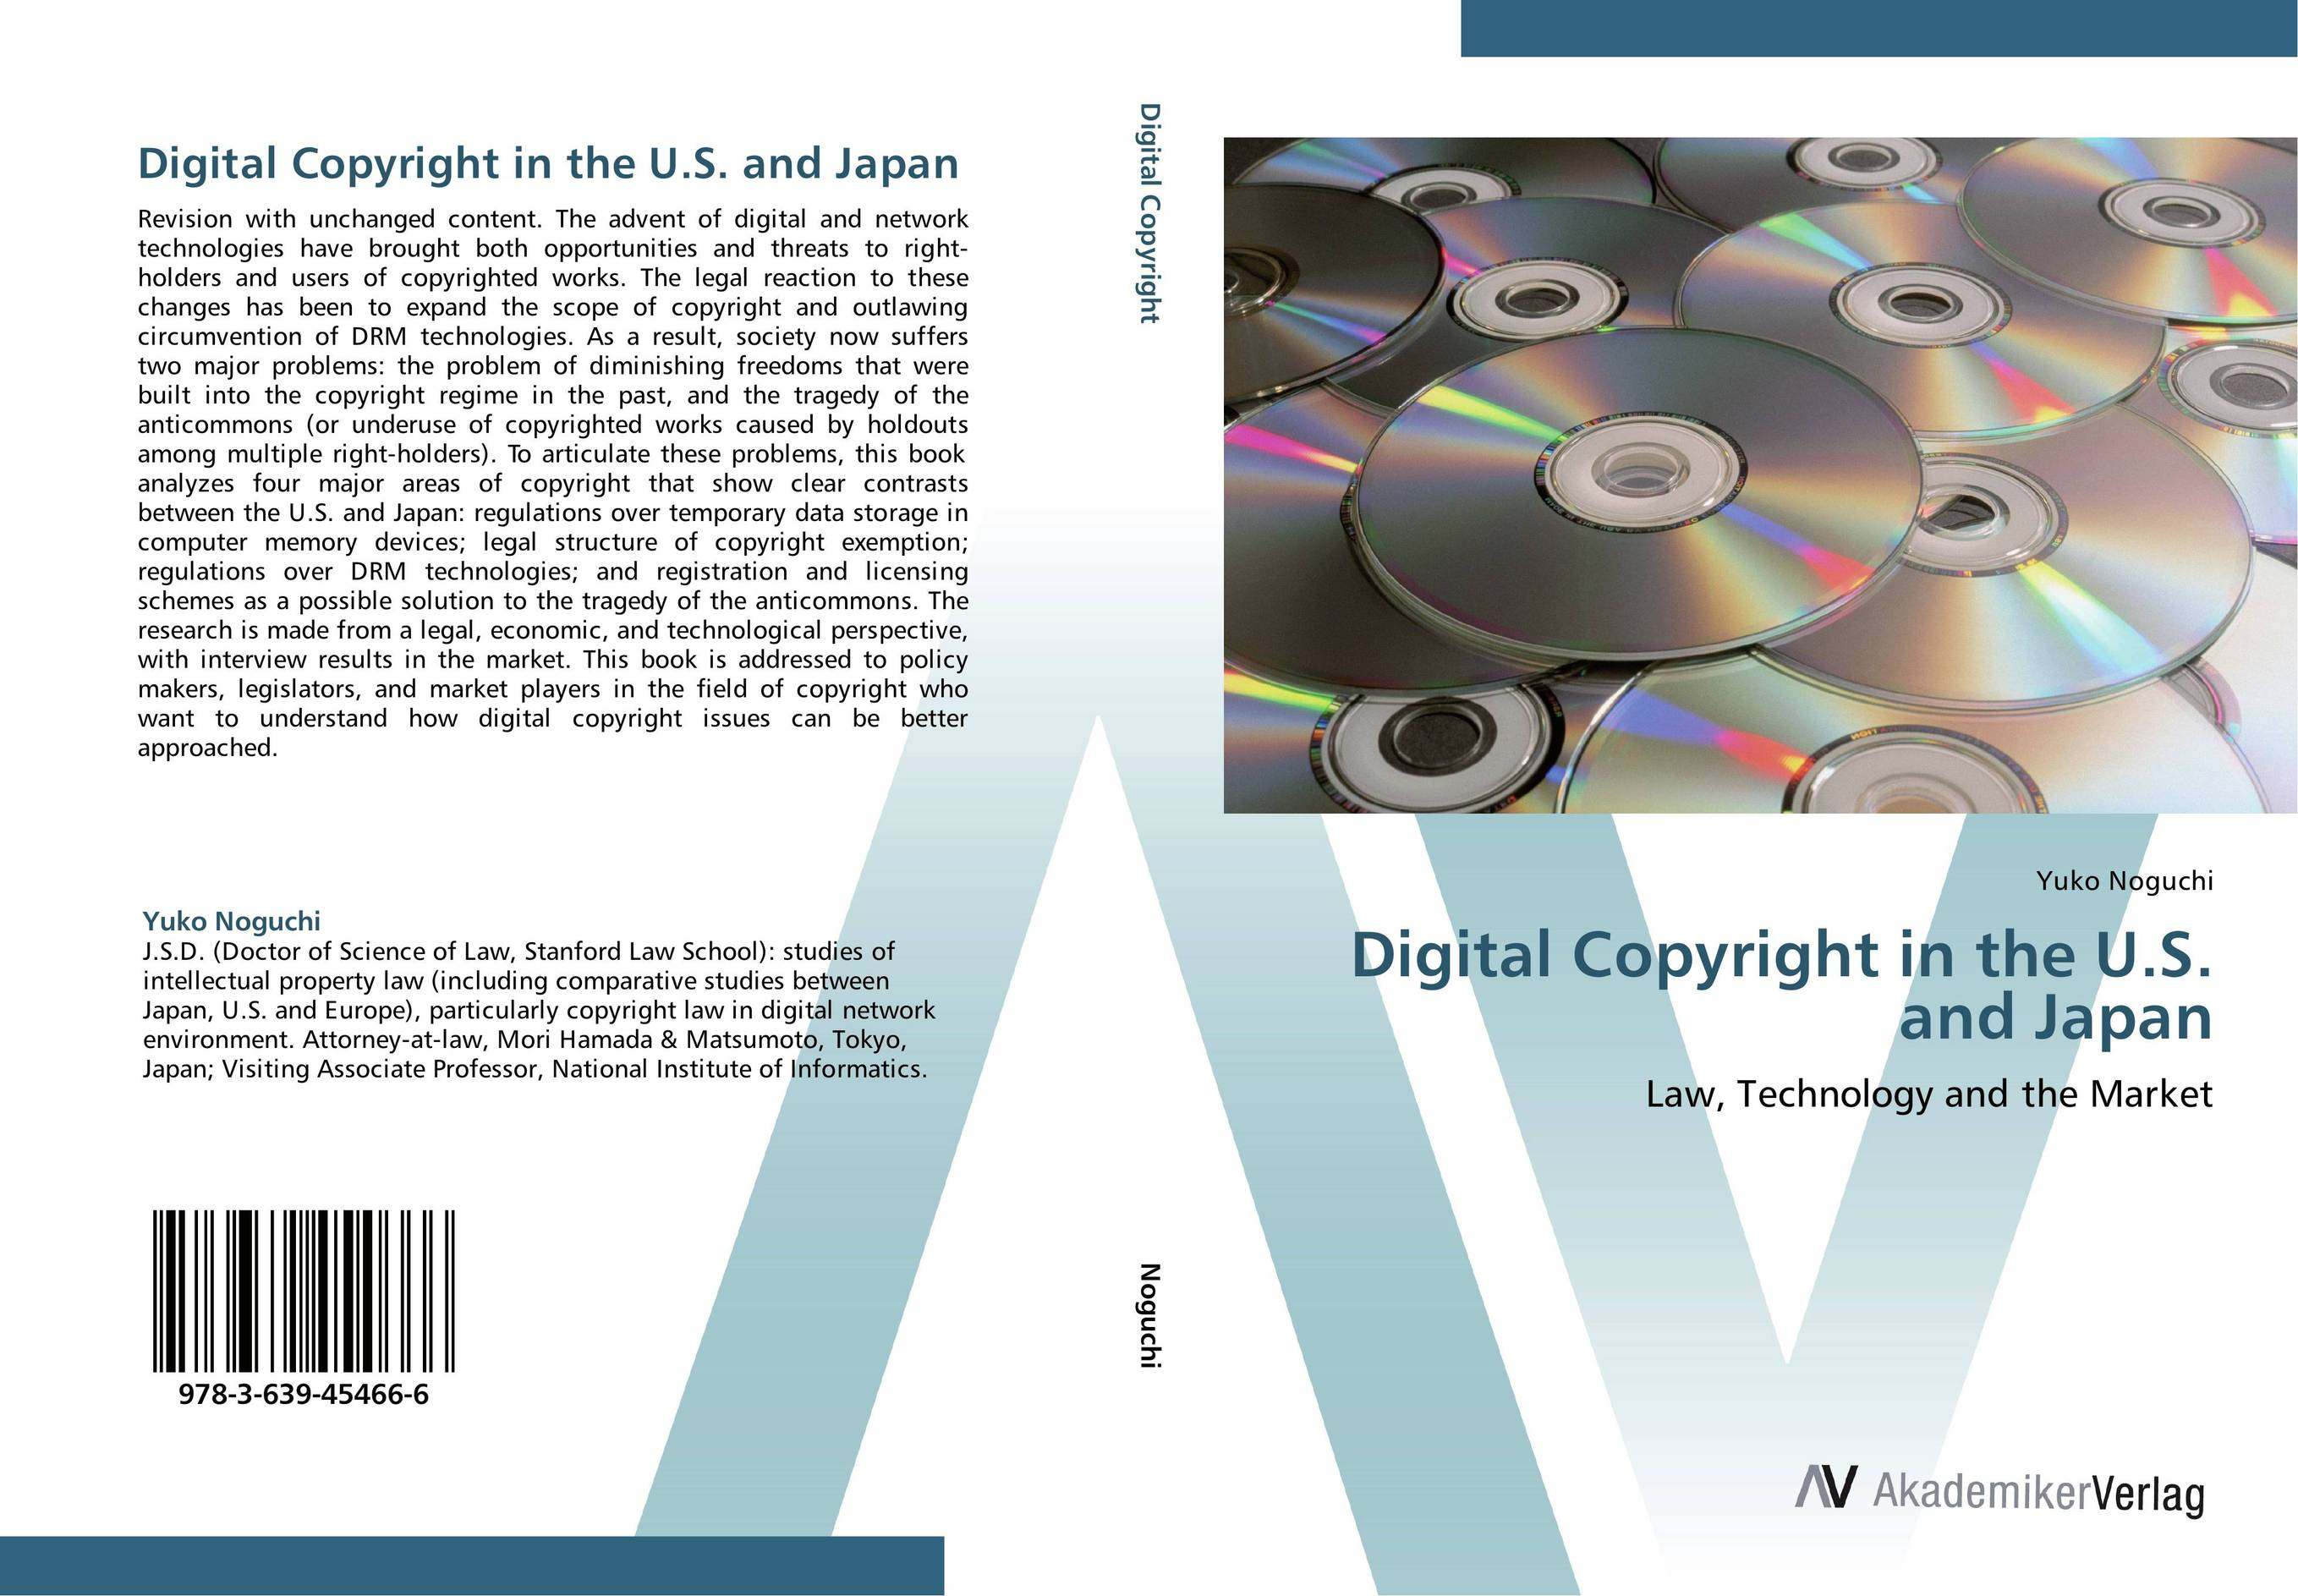 Digital Copyright in the U.S. and Japan primavera de filippi copyright law in the digital environment